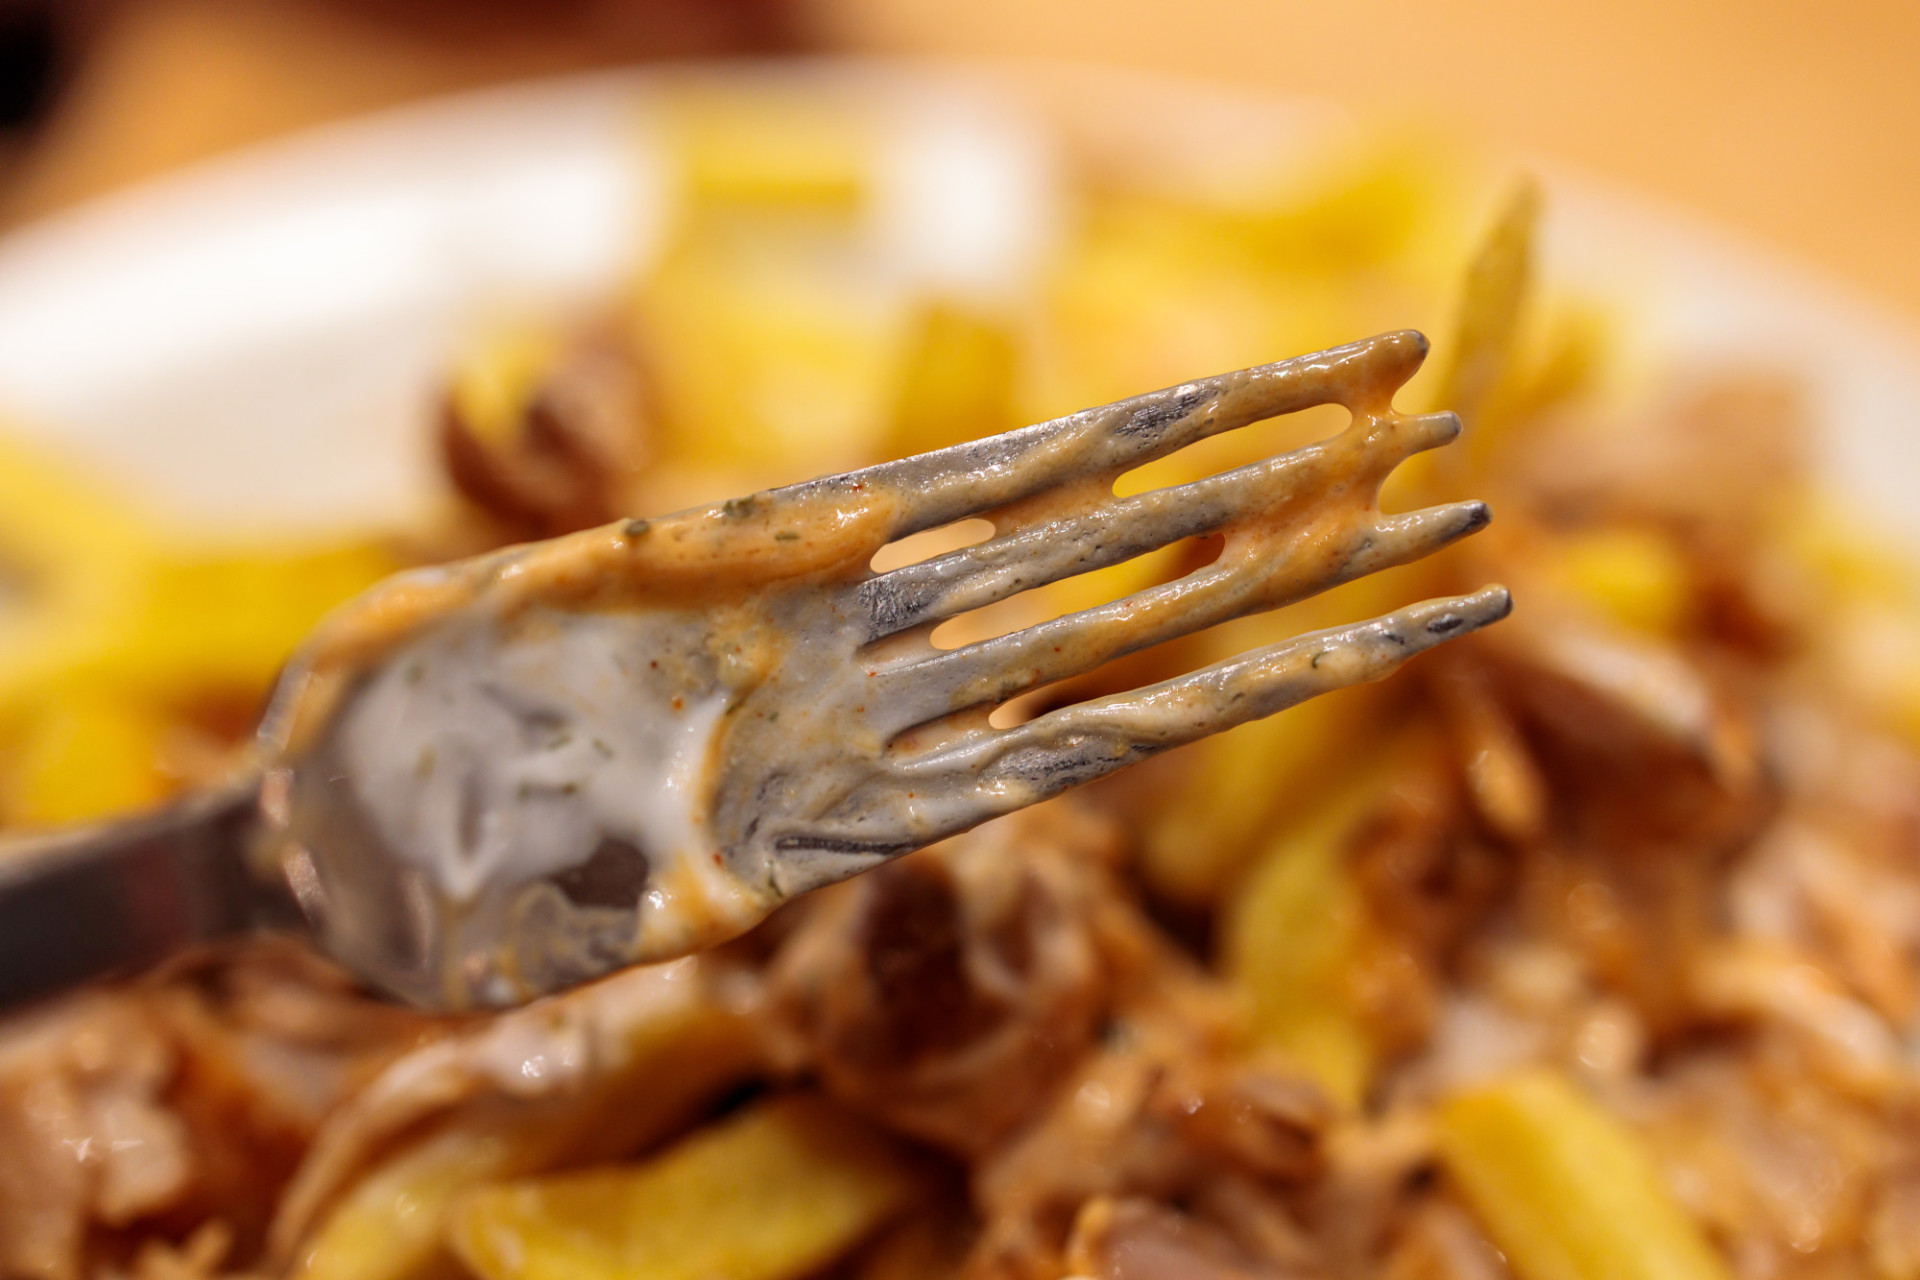 Fork smeared with sauce